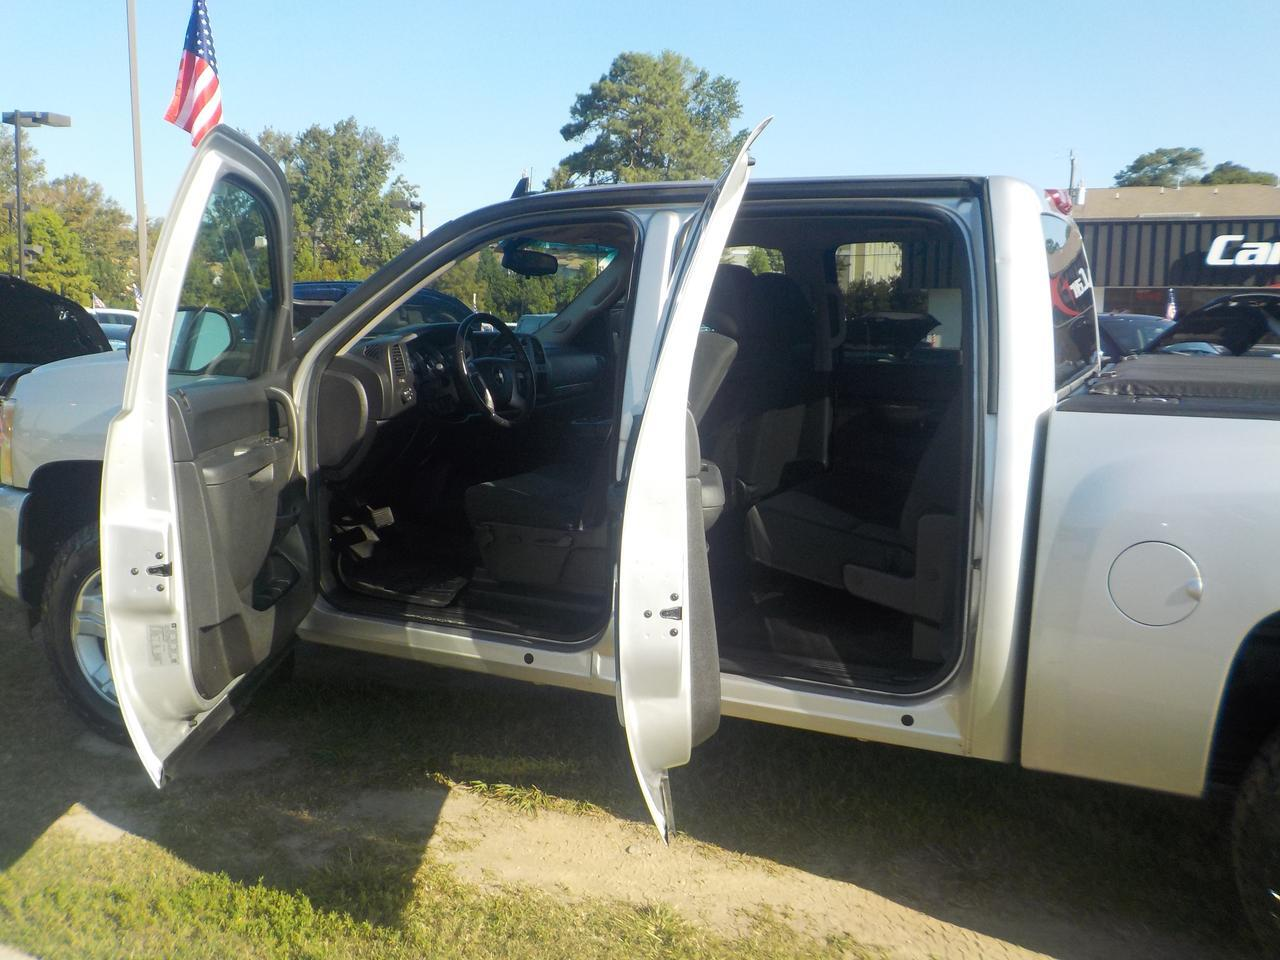 2011 CHEVROLET SILVERADO 1500 LT CREW CAB 4X4, Z71 PACKAGE, TOW PACKAGE, LOW MILES! Virginia Beach VA